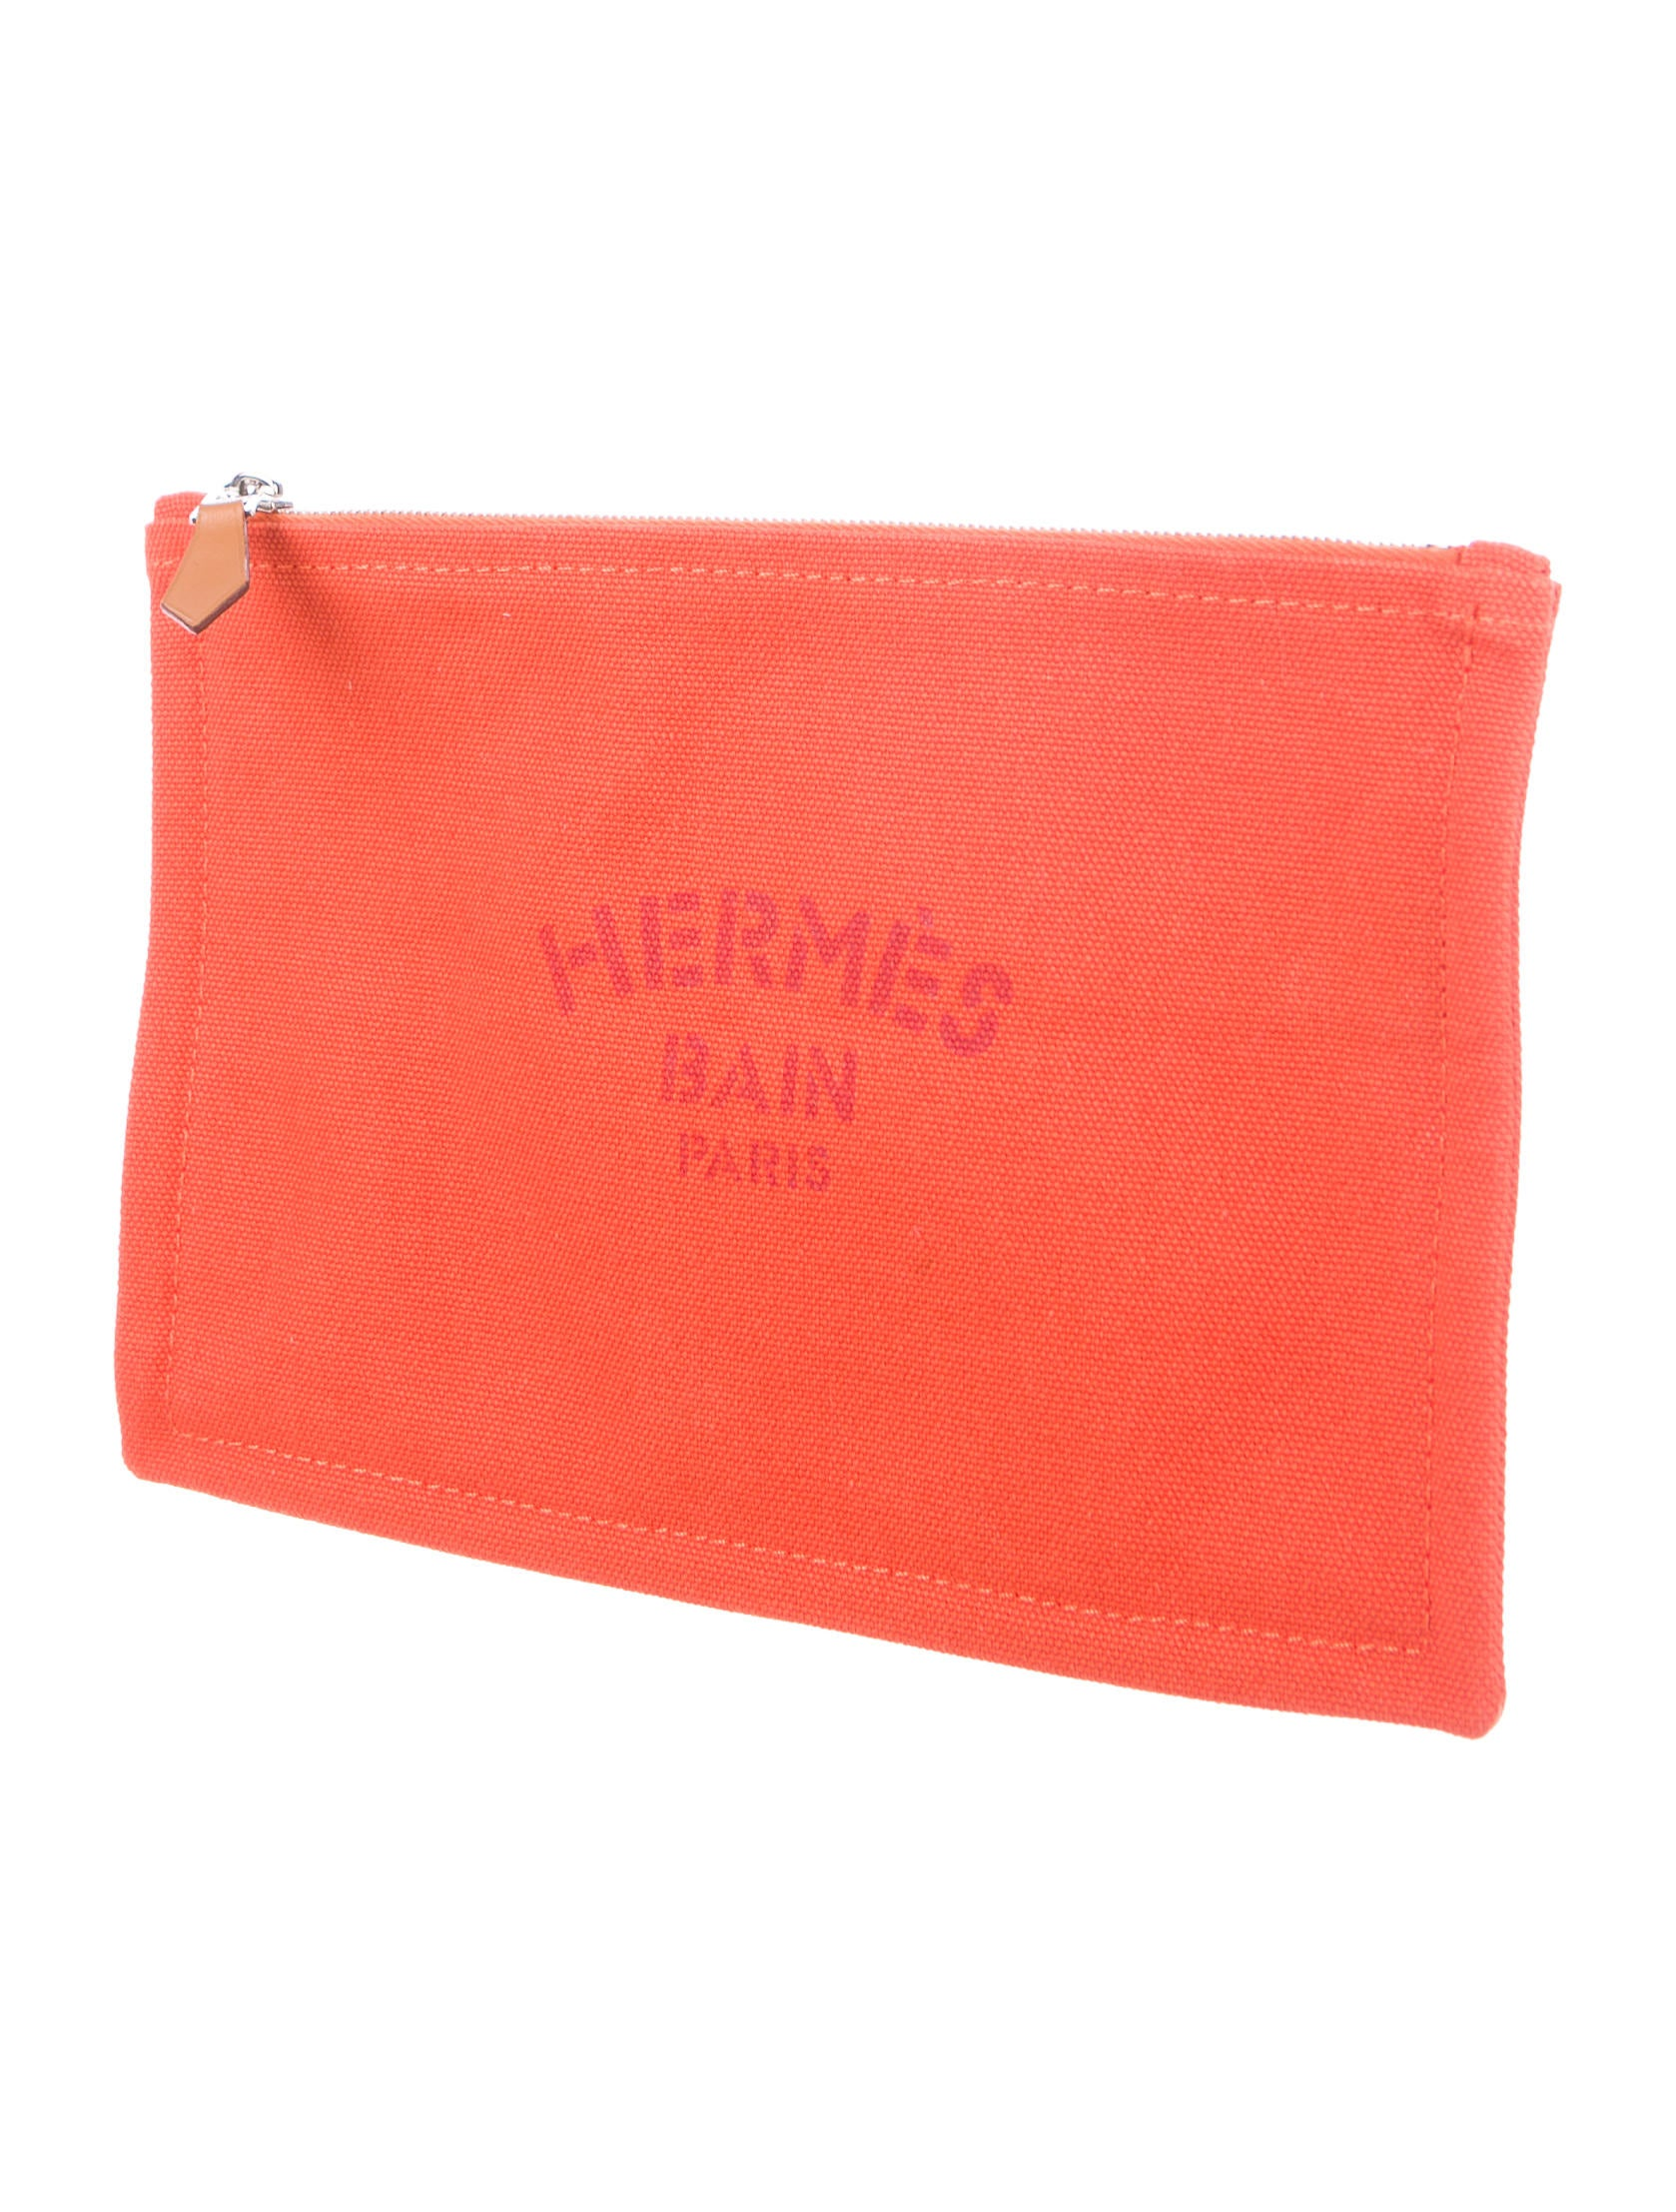 Herm 232 S Flat Yachting Pm Pouch Handbags Her107178 The